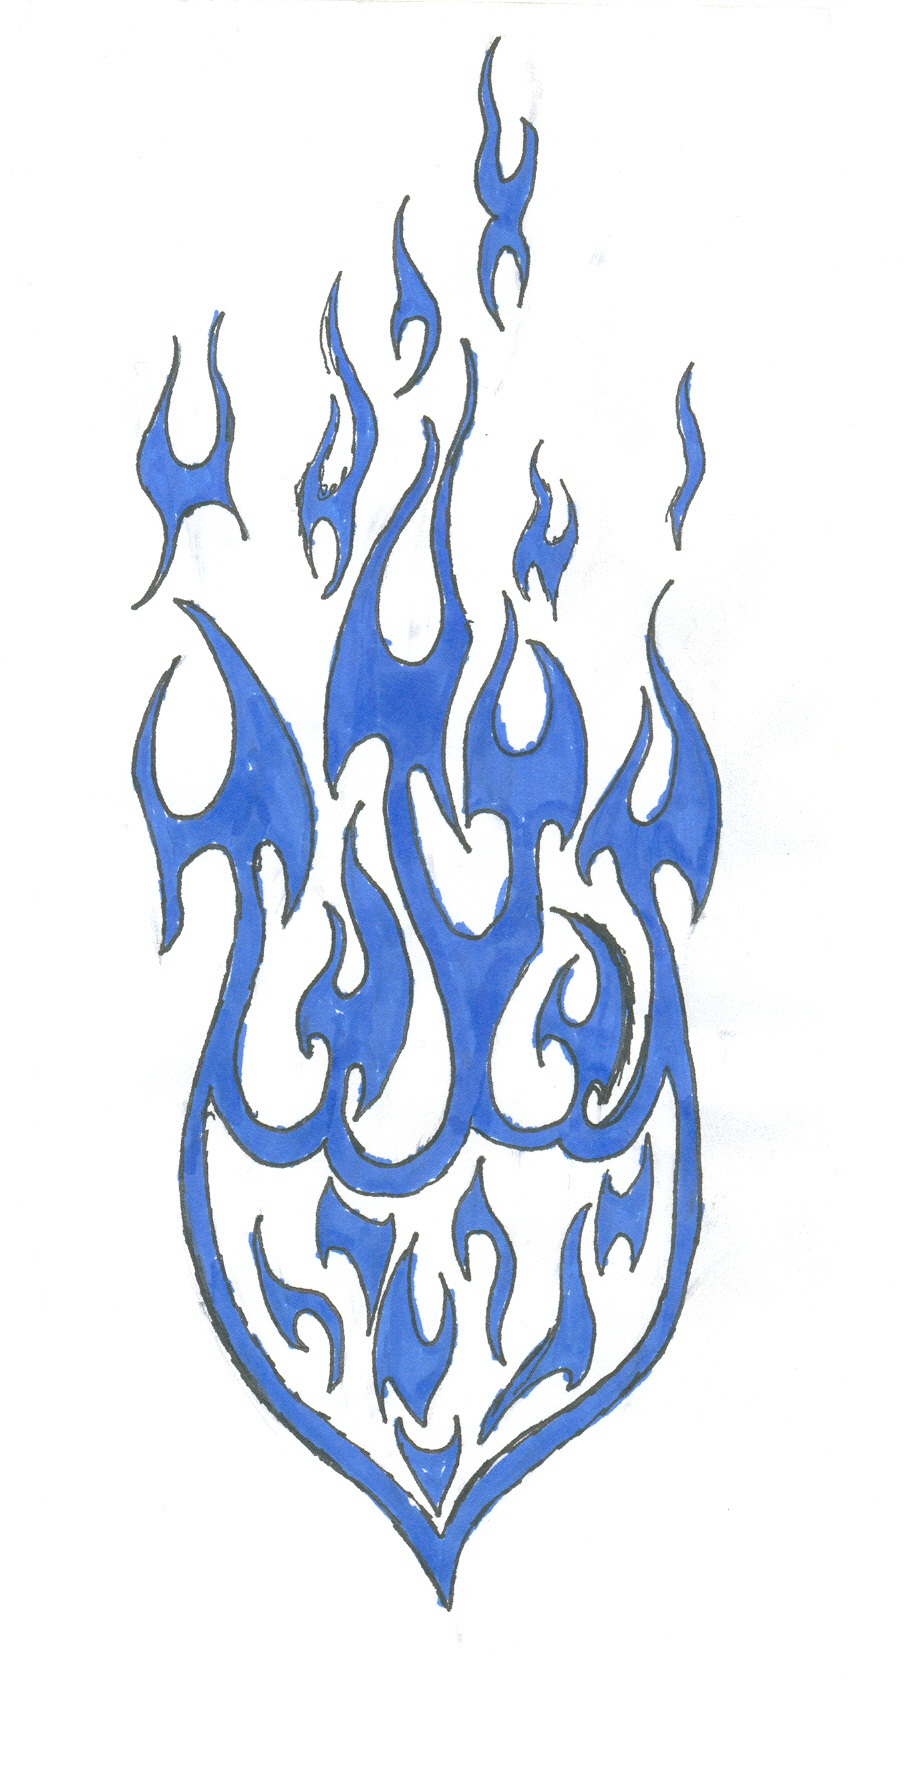 fire drawings design - photo #43